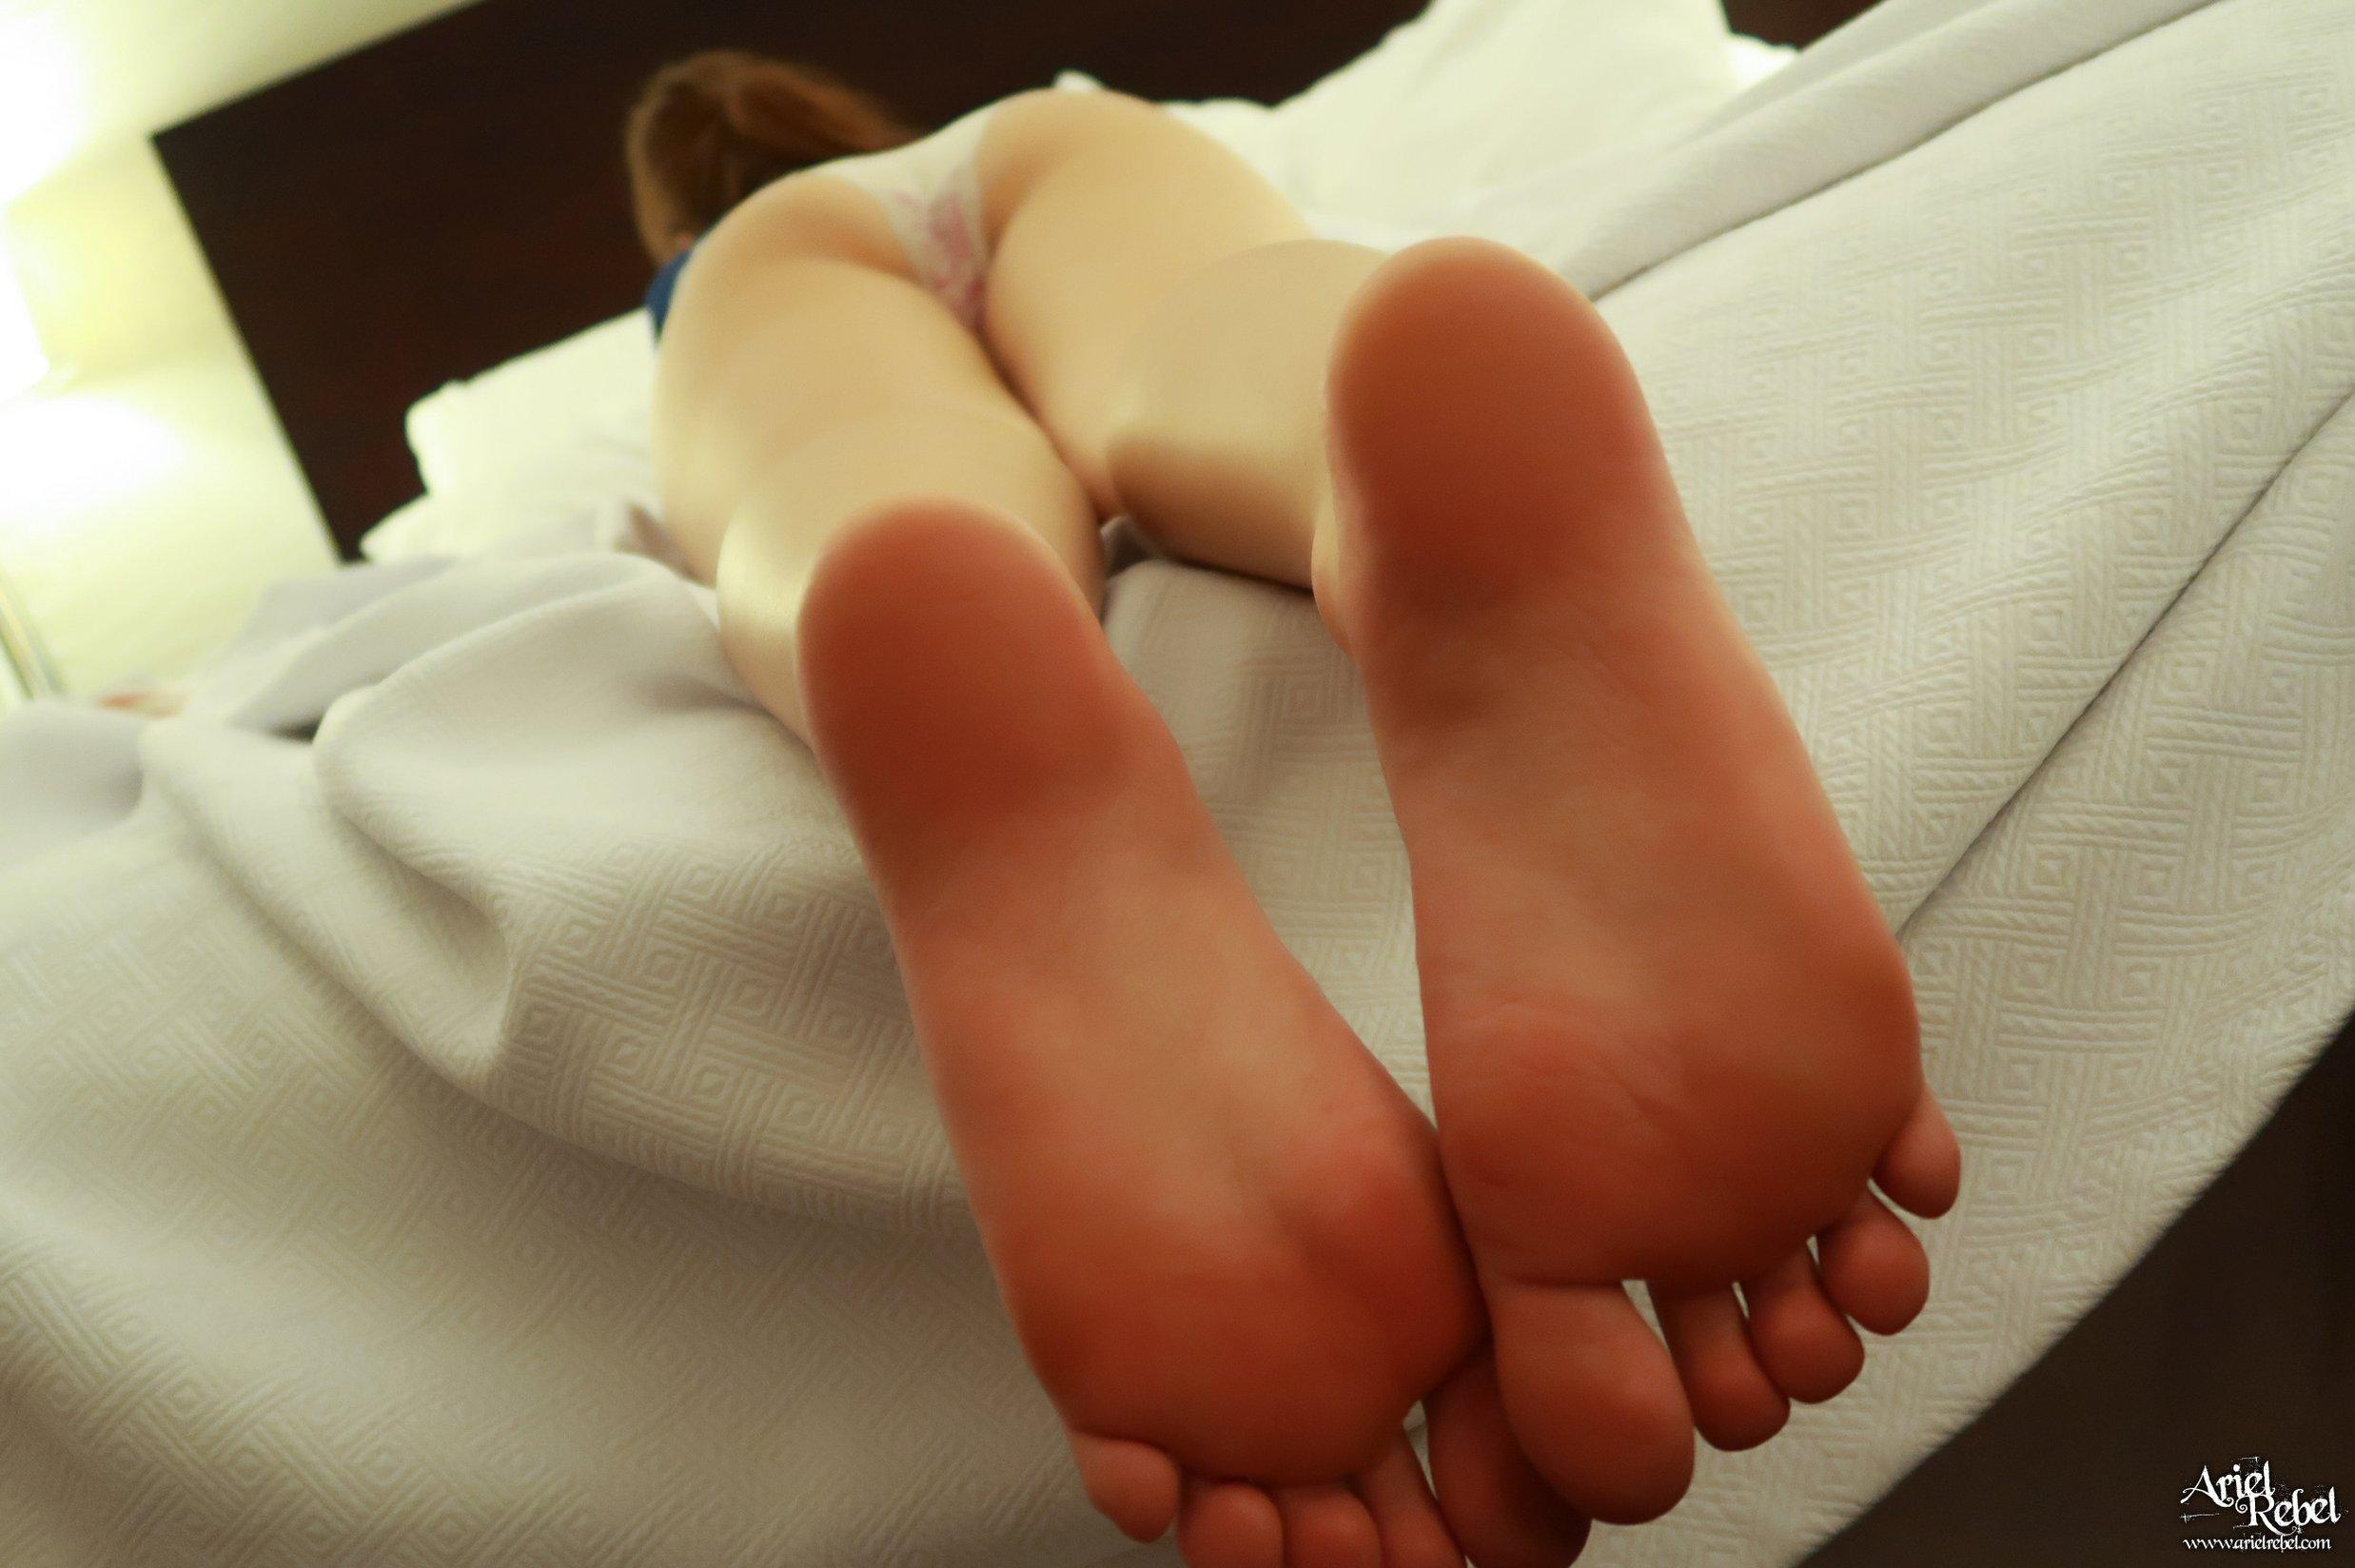 Ariel Rebel Hotel Footsies | Coed Cherry photo 3